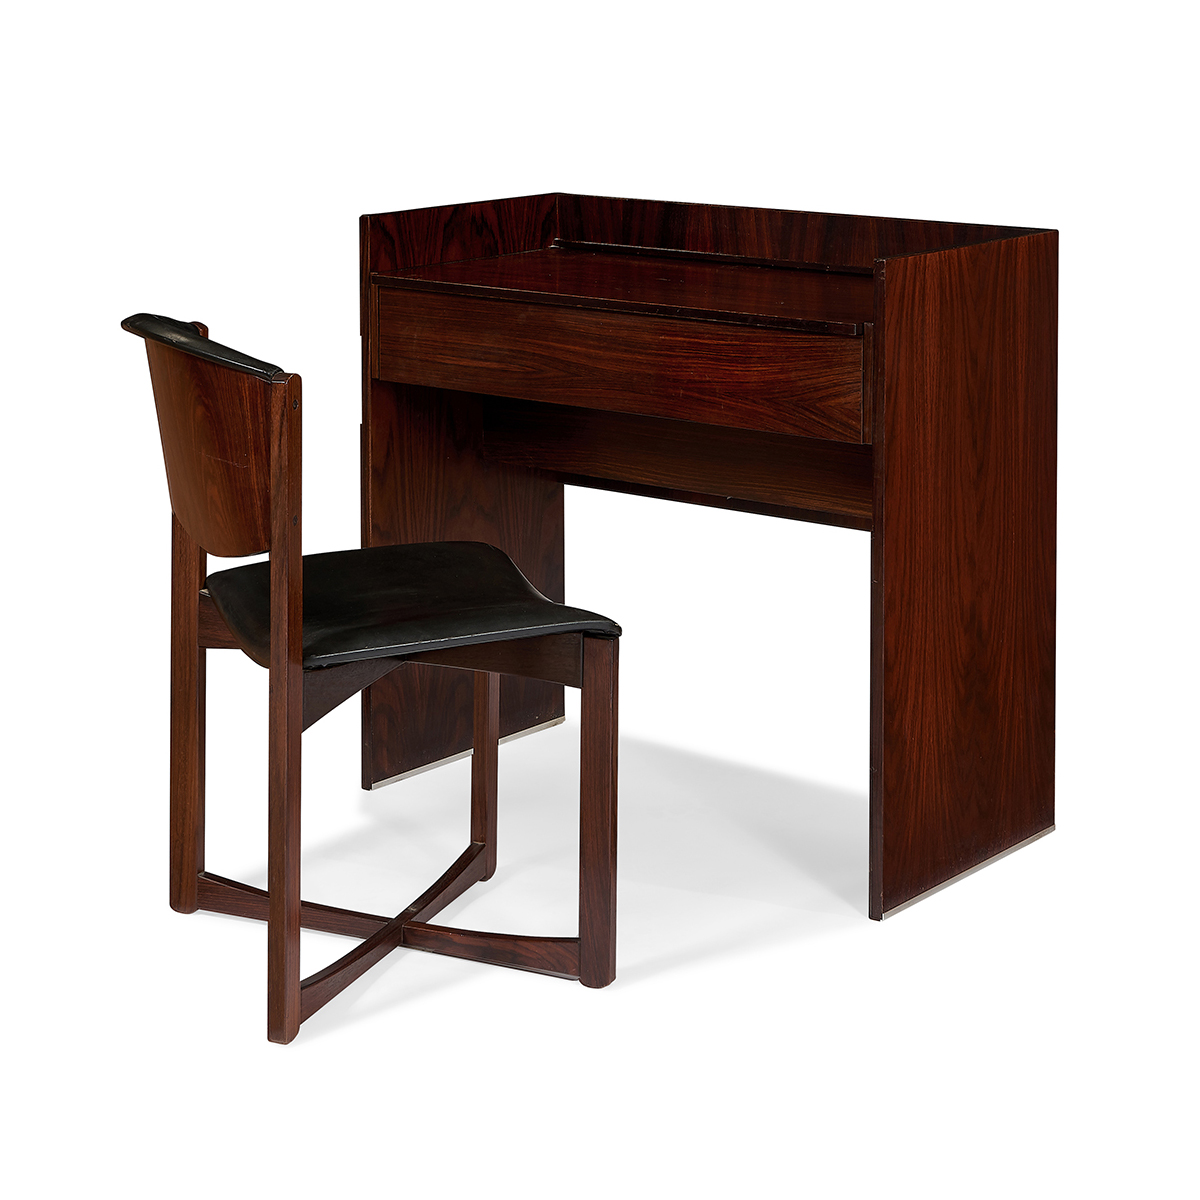 "Ico Parisi (1916-1996) for MIM vanity with chair vanity: 35 1/2""w x 18""d x 33 1/4""h"